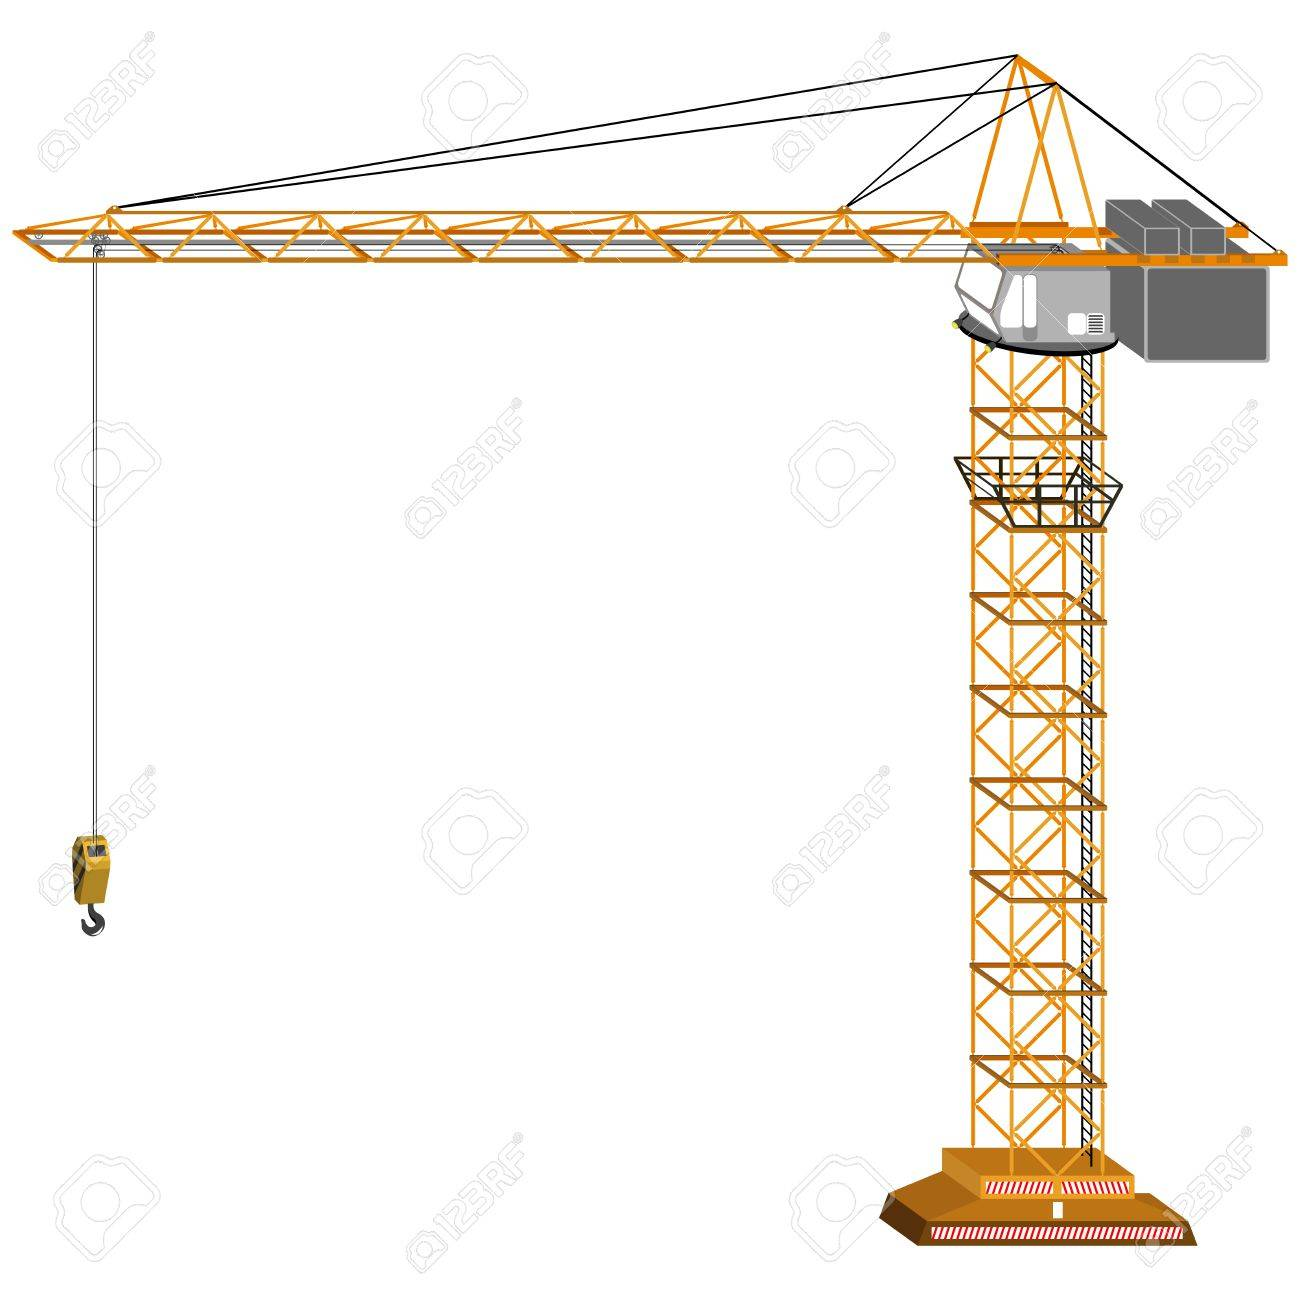 Construction Crane Drawing At Getdrawings Com Free For Personal Use Construction Crane Drawing